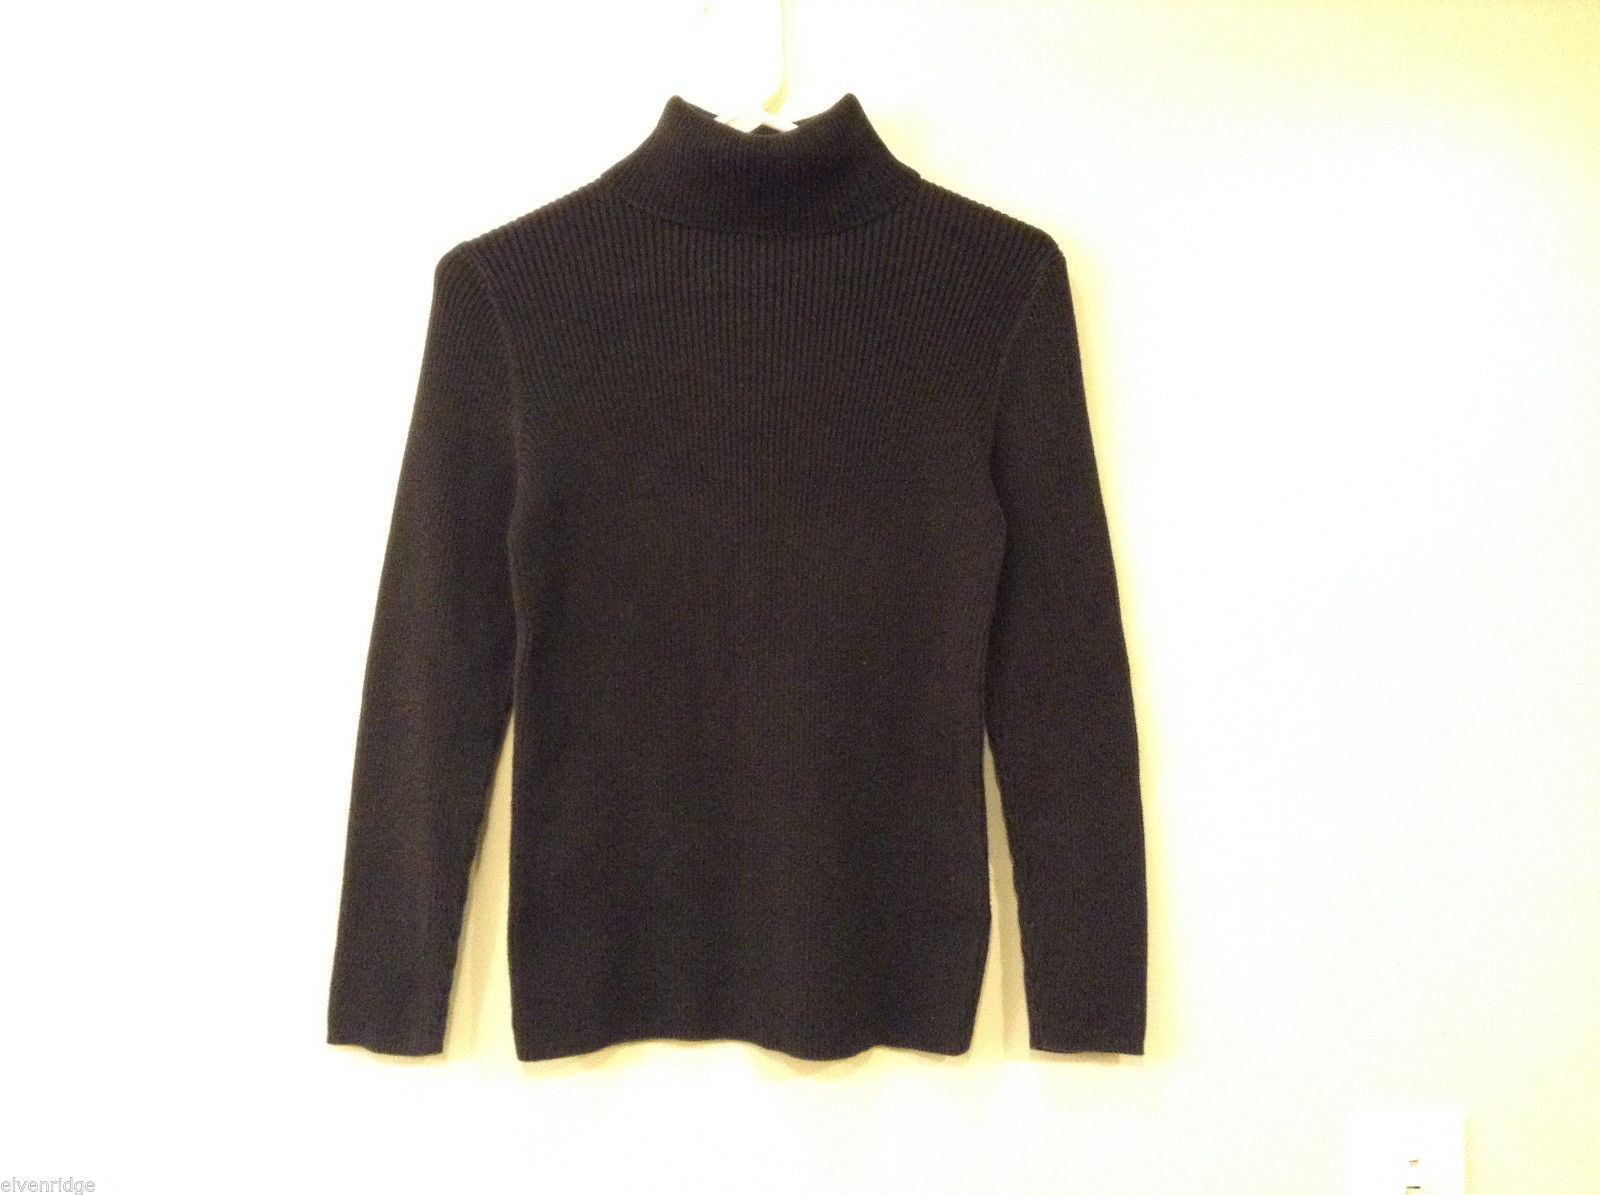 Old Navy Women's Size M Turtleneck Sweater Black Ribbed 100% Cotton Long Sleeves